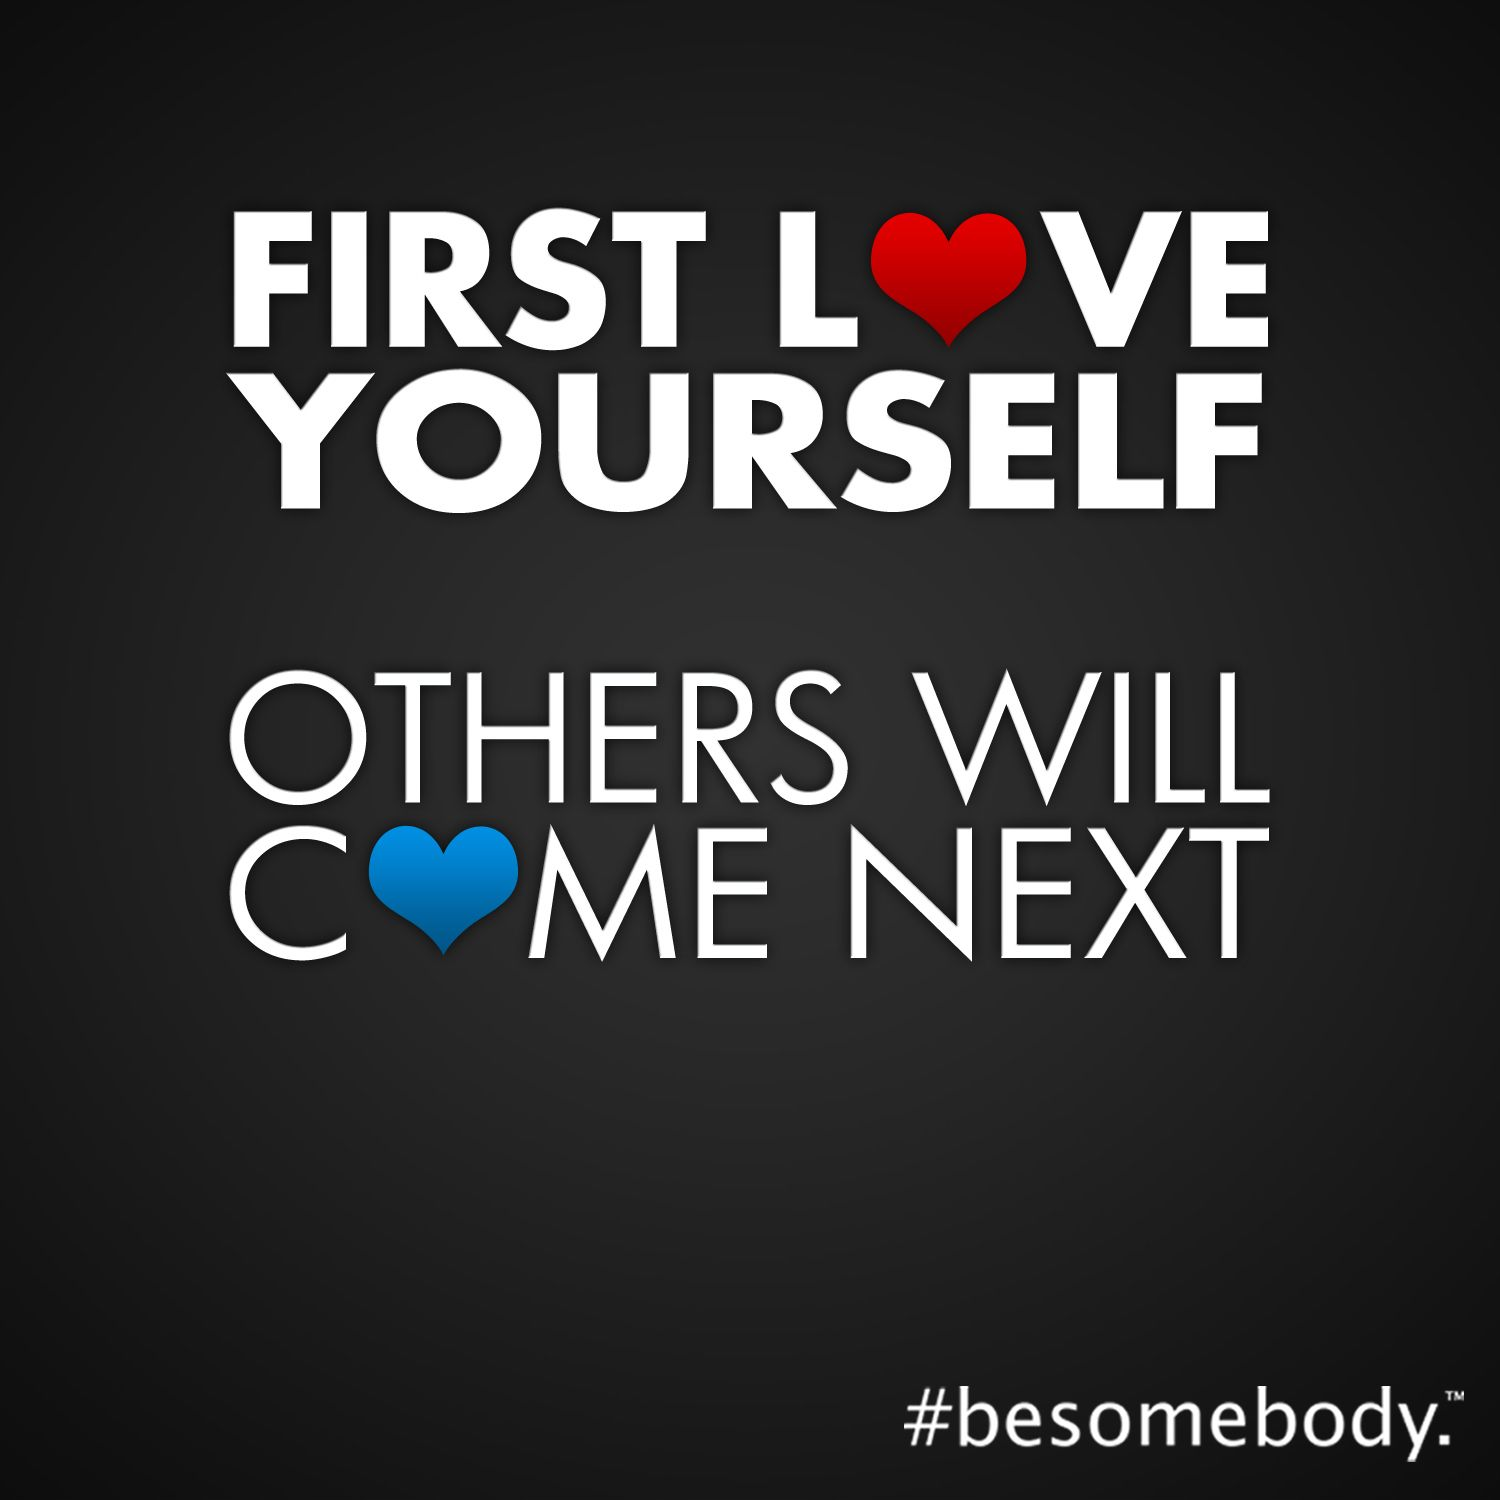 First Love Yourself Others Will Come Next Besomebody Words First Love Gaming Logos